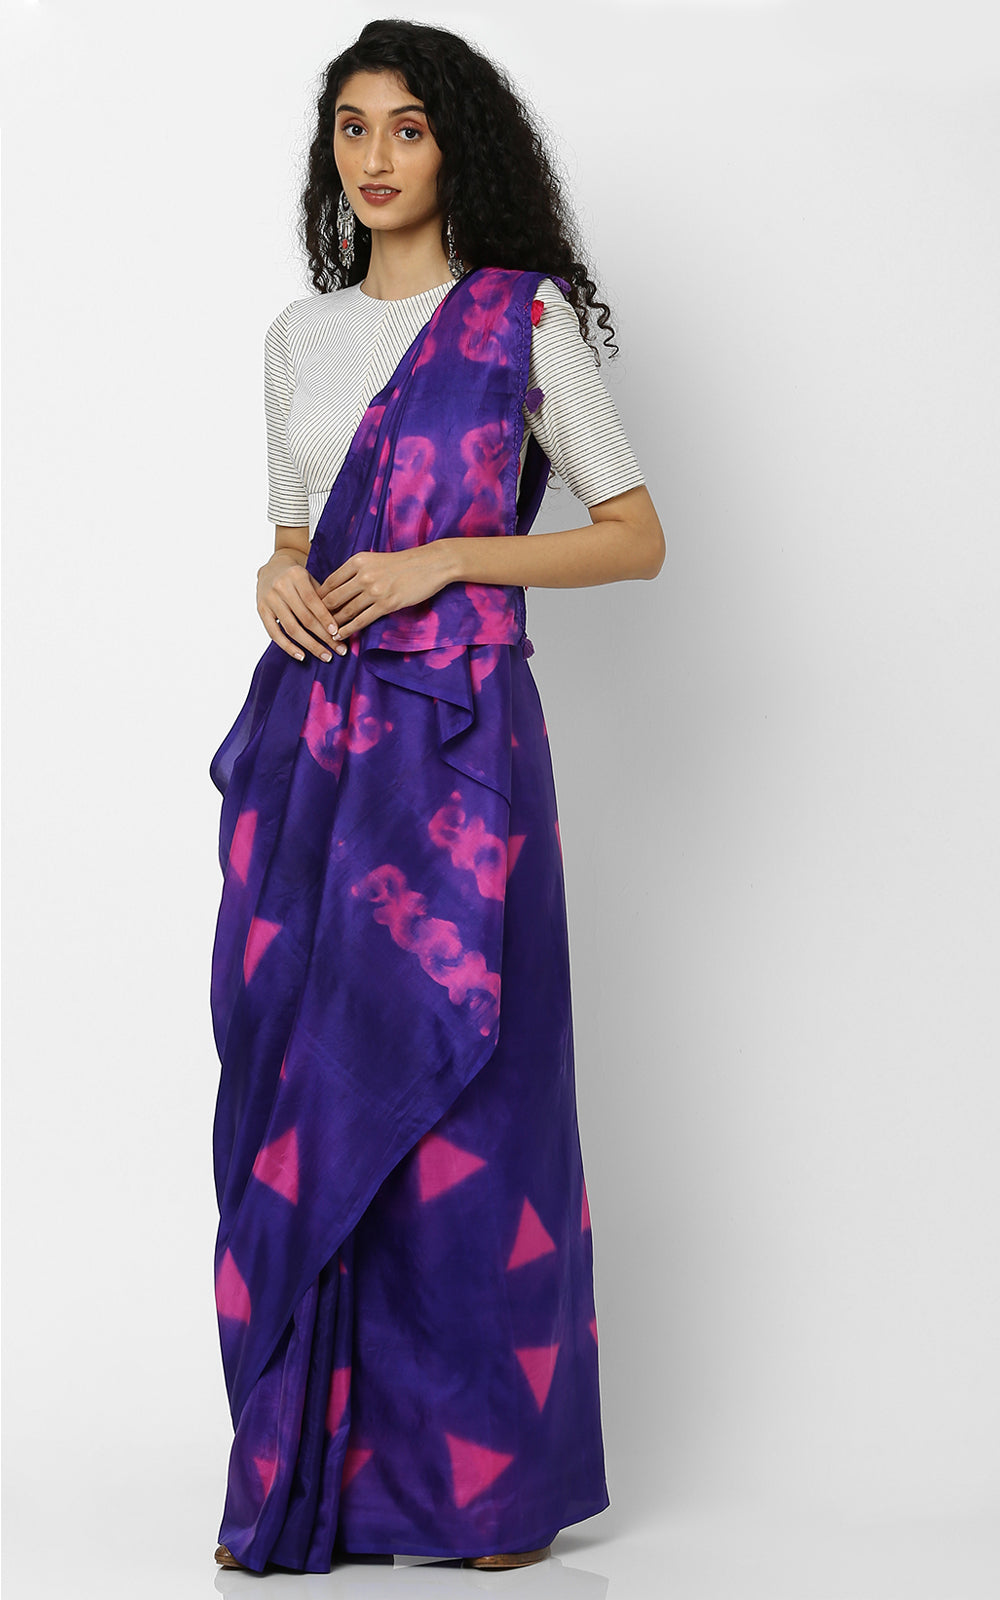 SHIBORI PURE SILK WITH PURPLE AND PINK